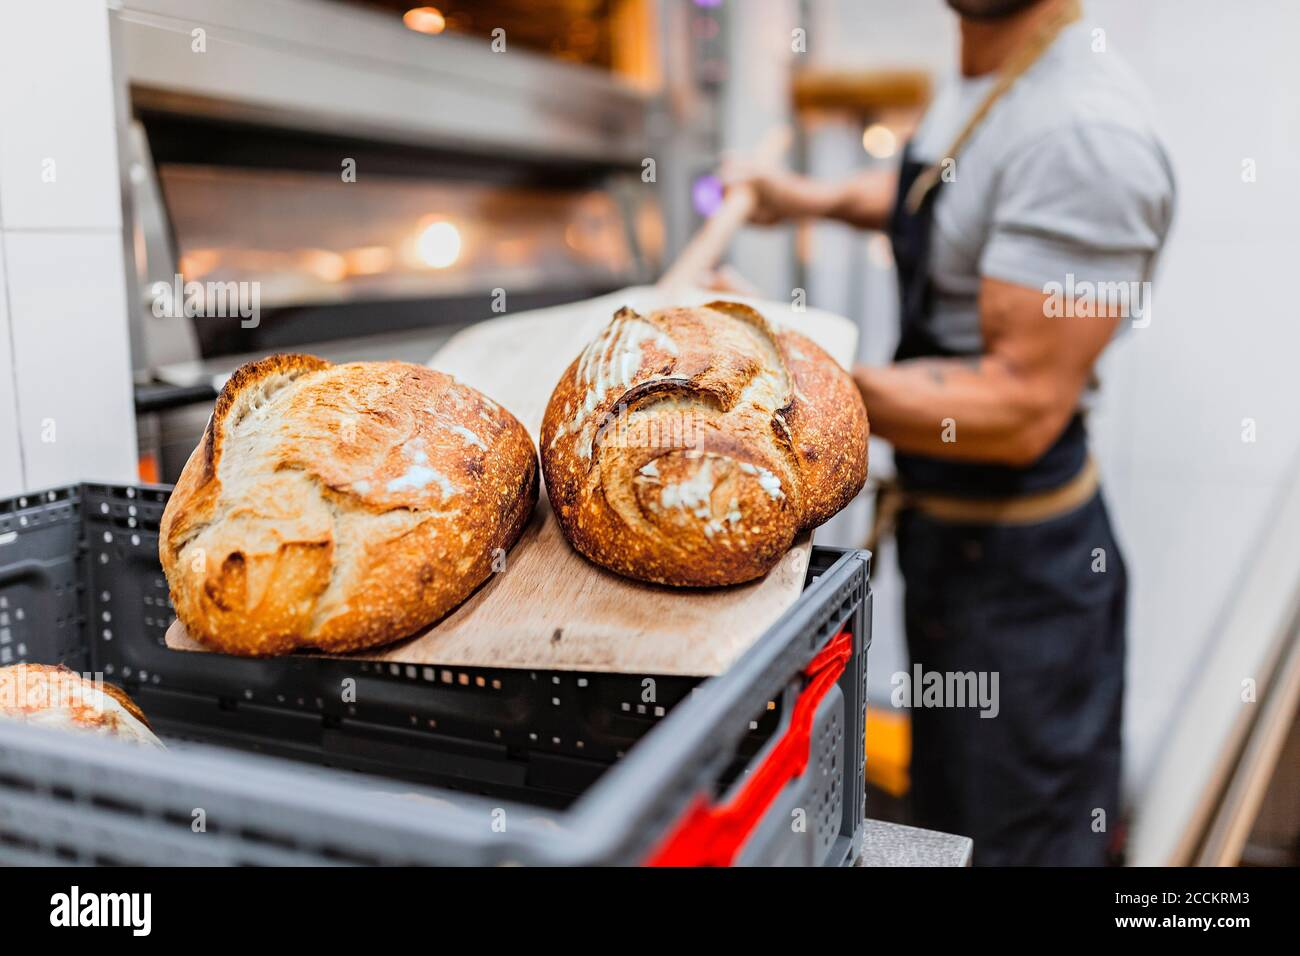 Baker with baked bread on wooden sheet at bakery Stock Photo